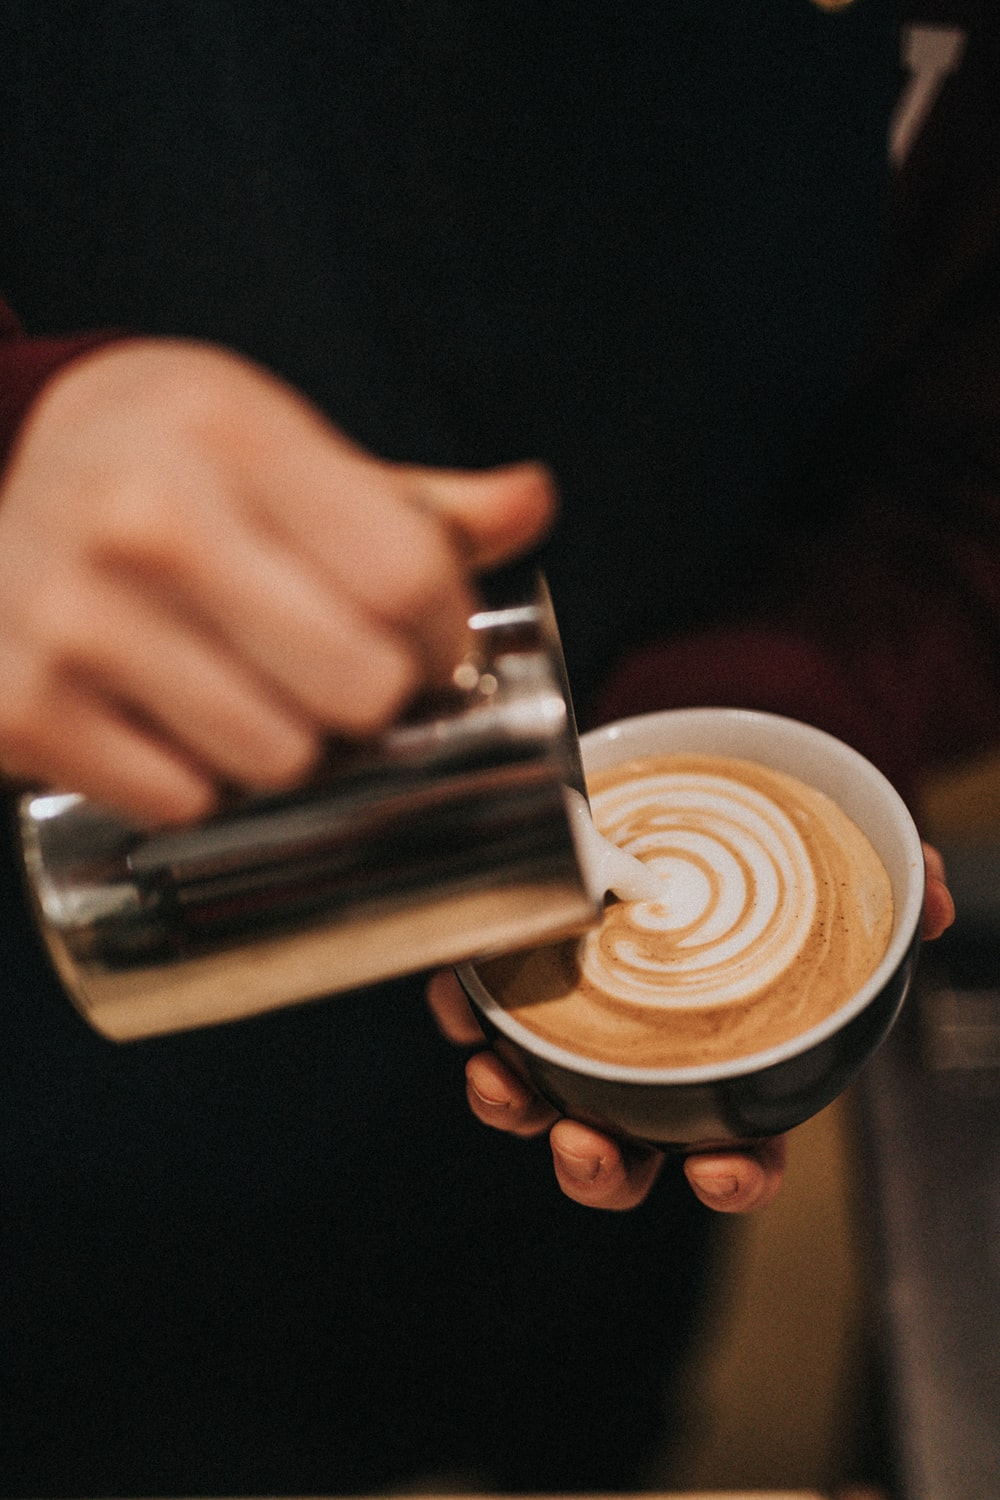 person pouring latte in mug